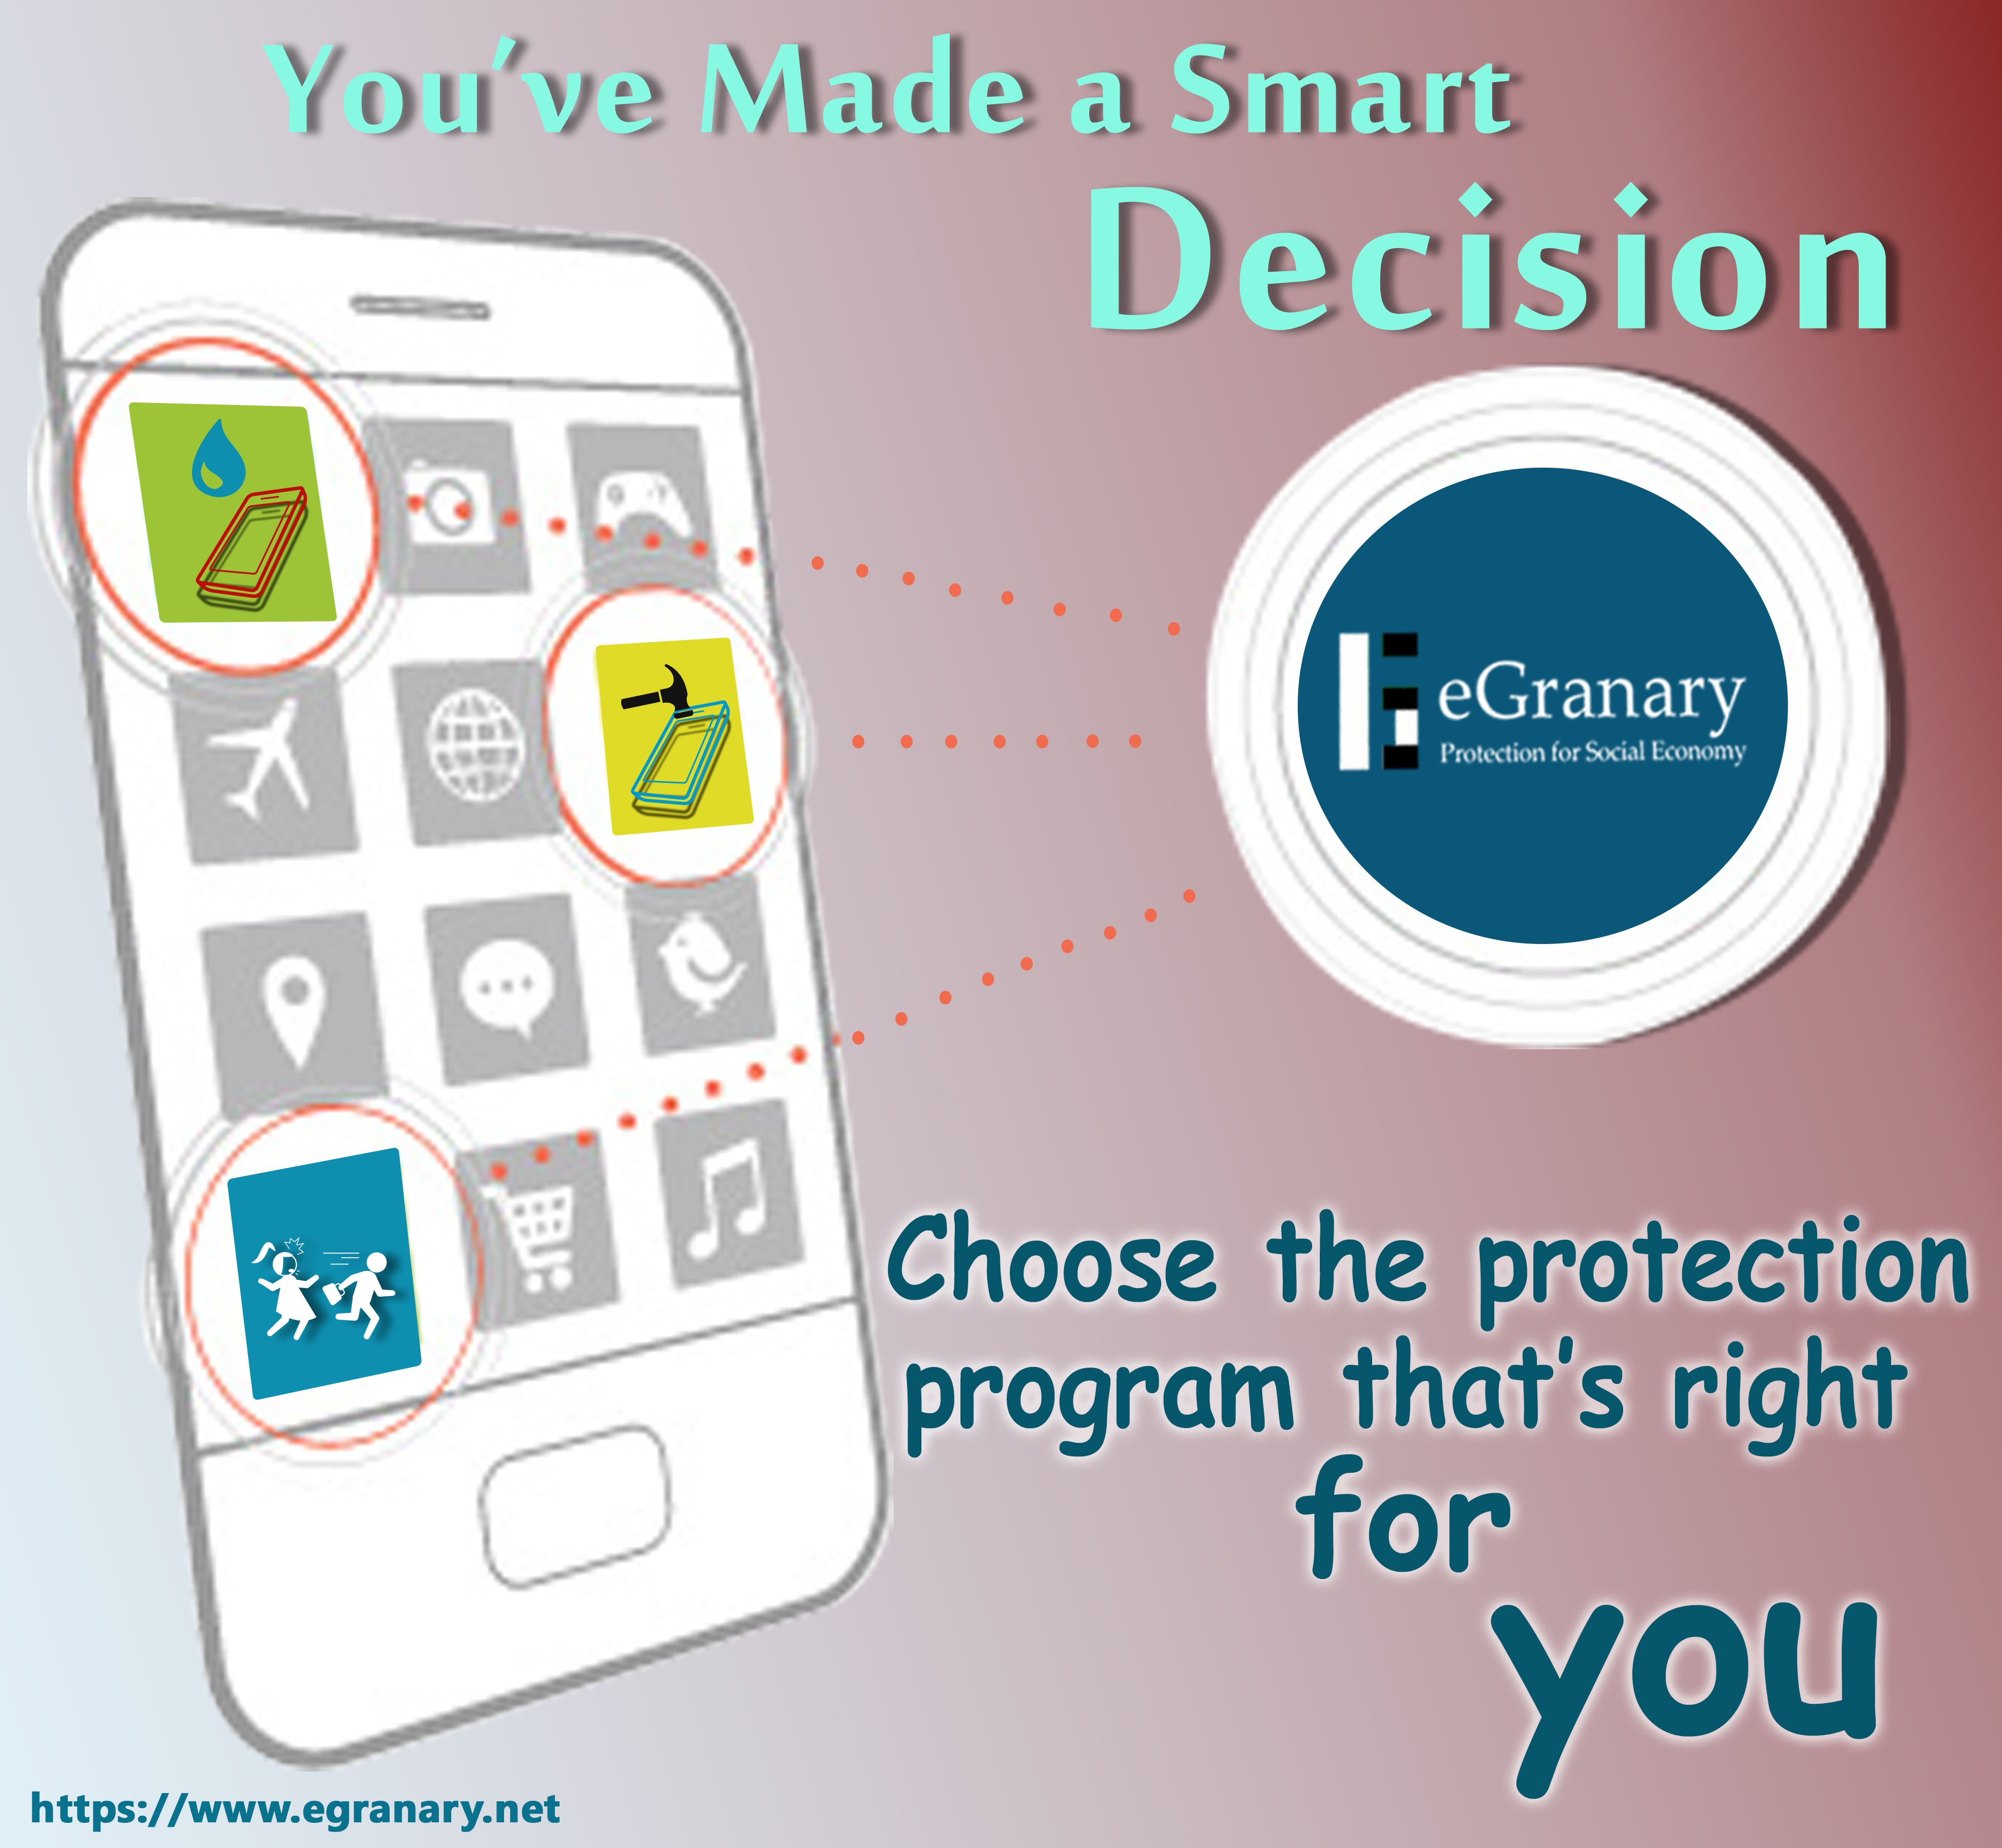 Mobile Device Insurance Is Very Useful In Situations Like Lost